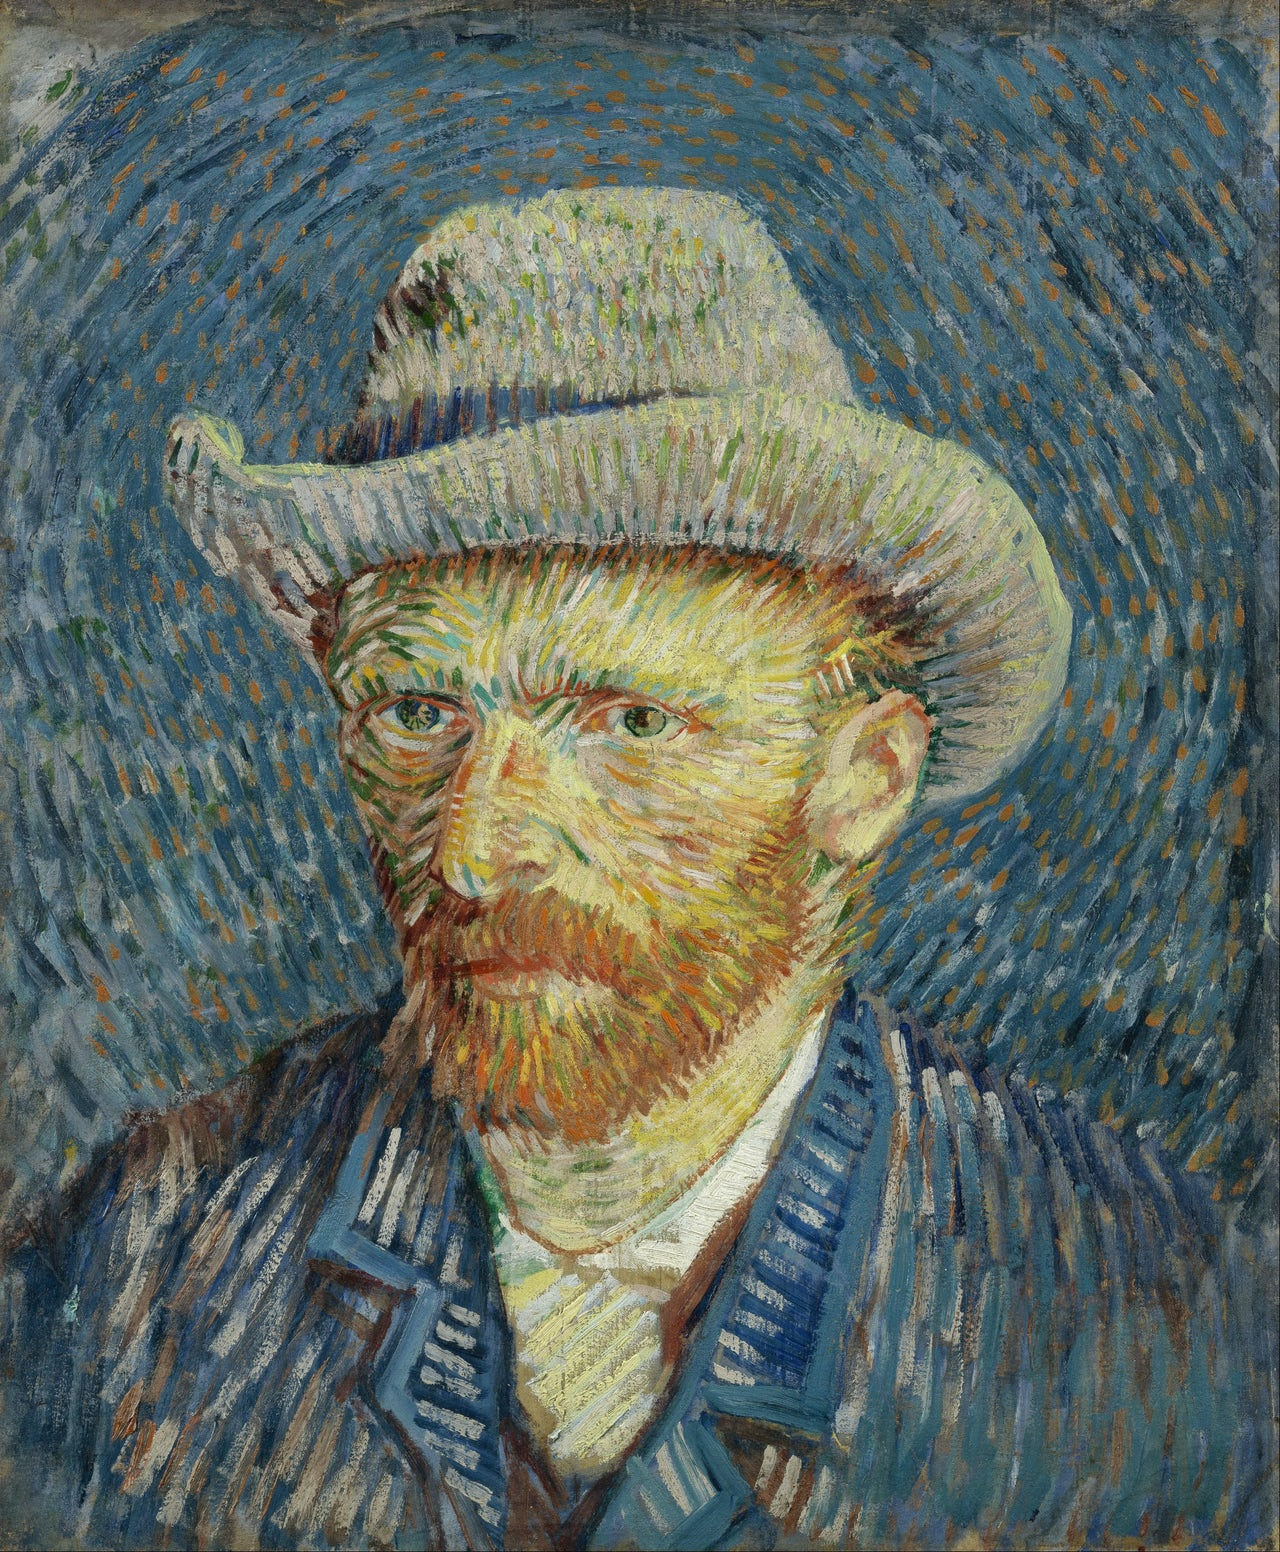 Meet the ear doctor who thinks Vincent Van Gogh was murdered